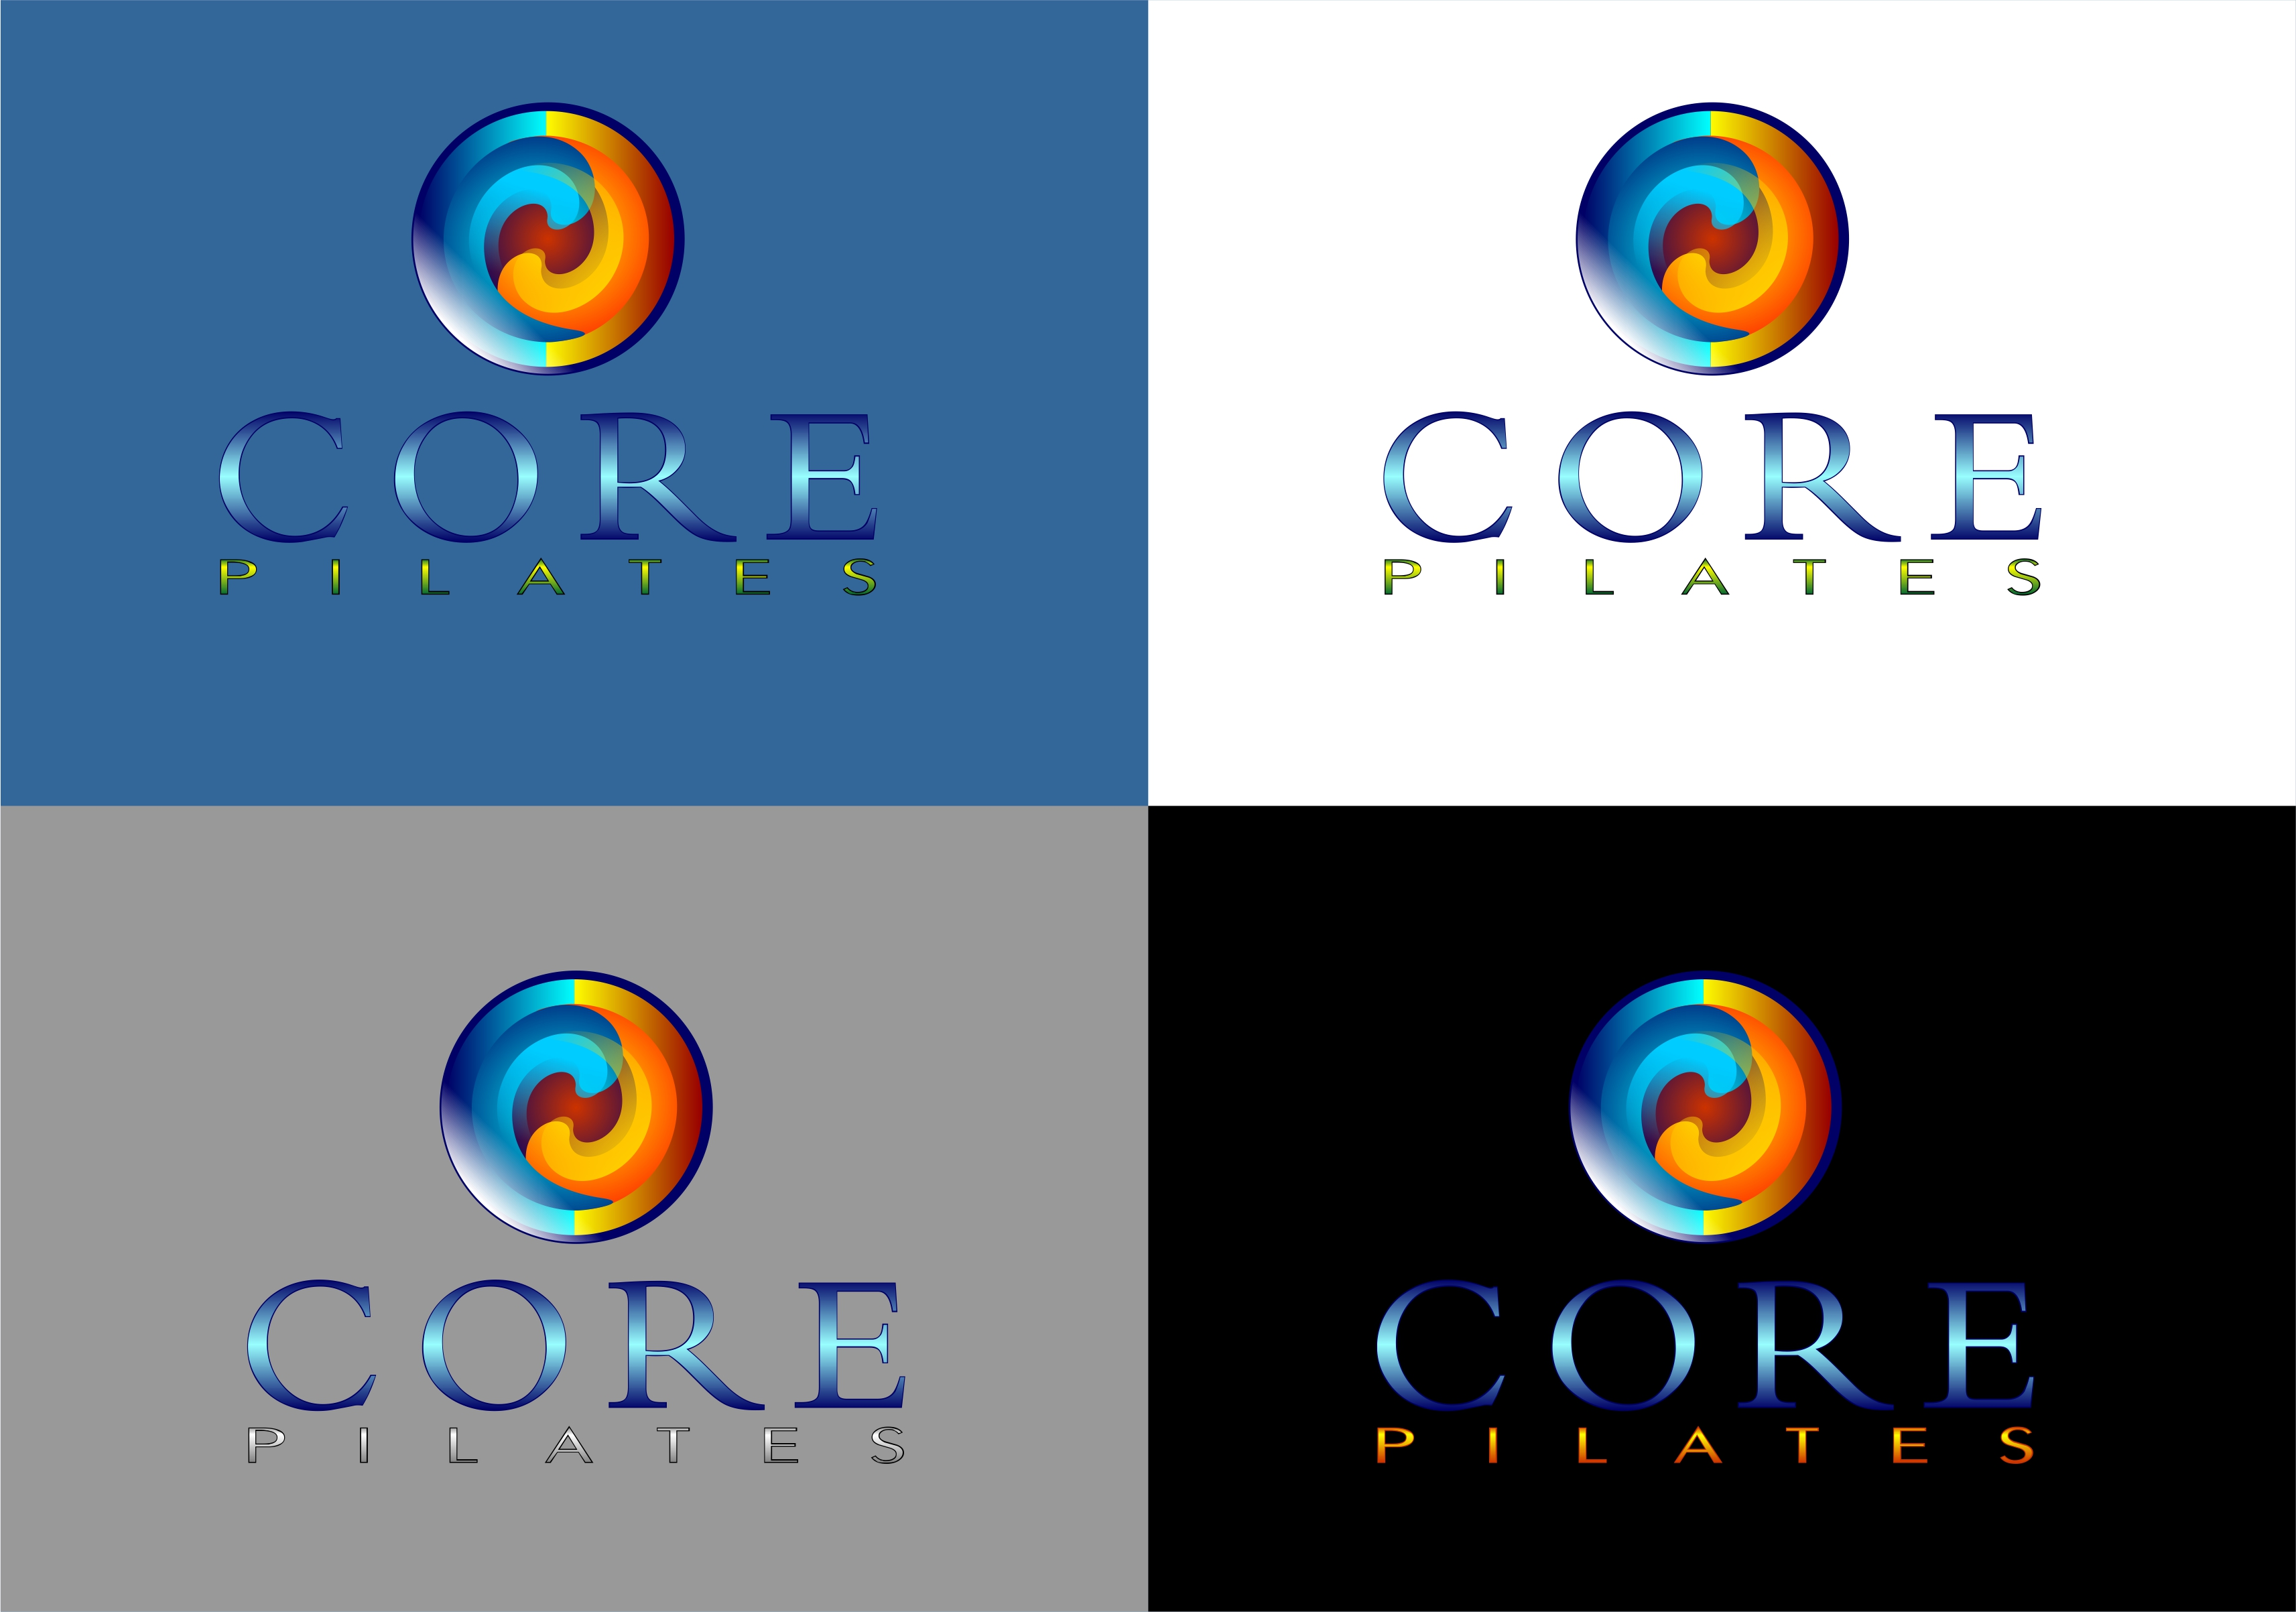 Logo Design by Fatih Ercan - Entry No. 59 in the Logo Design Contest Core Pilates Logo Design.